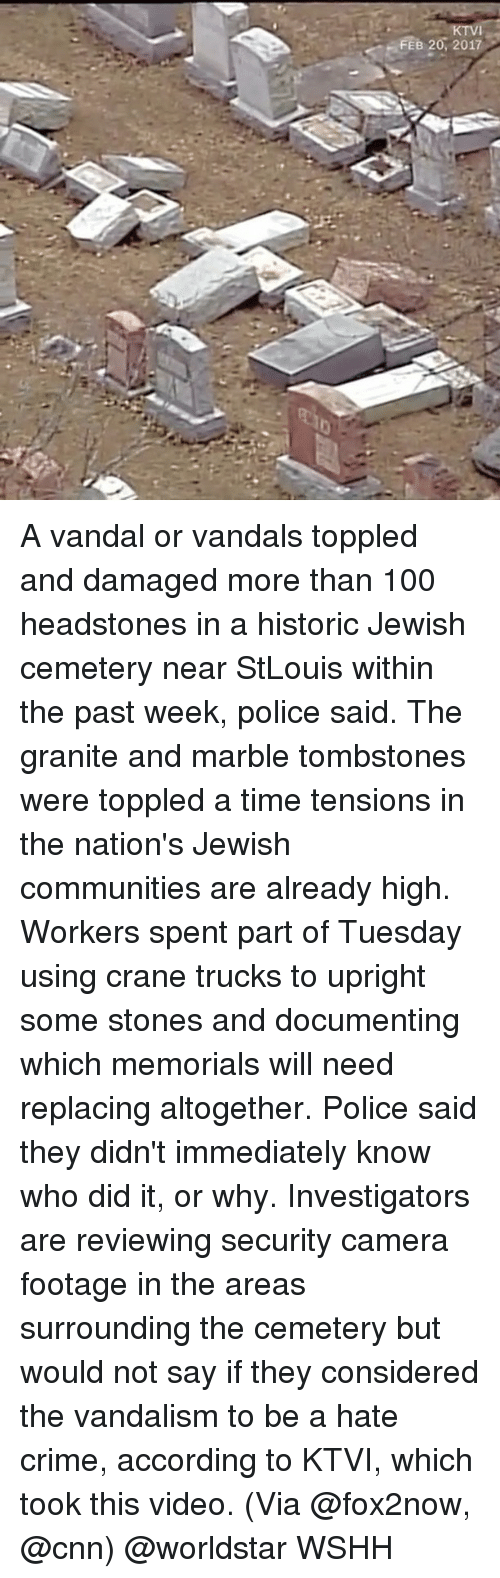 Vandalizers: FEB 20, 2017 A vandal or vandals toppled and damaged more than 100 headstones in a historic Jewish cemetery near StLouis within the past week, police said. The granite and marble tombstones were toppled a time tensions in the nation's Jewish communities are already high. Workers spent part of Tuesday using crane trucks to upright some stones and documenting which memorials will need replacing altogether. Police said they didn't immediately know who did it, or why. Investigators are reviewing security camera footage in the areas surrounding the cemetery but would not say if they considered the vandalism to be a hate crime, according to KTVI, which took this video. (Via @fox2now, @cnn) @worldstar WSHH